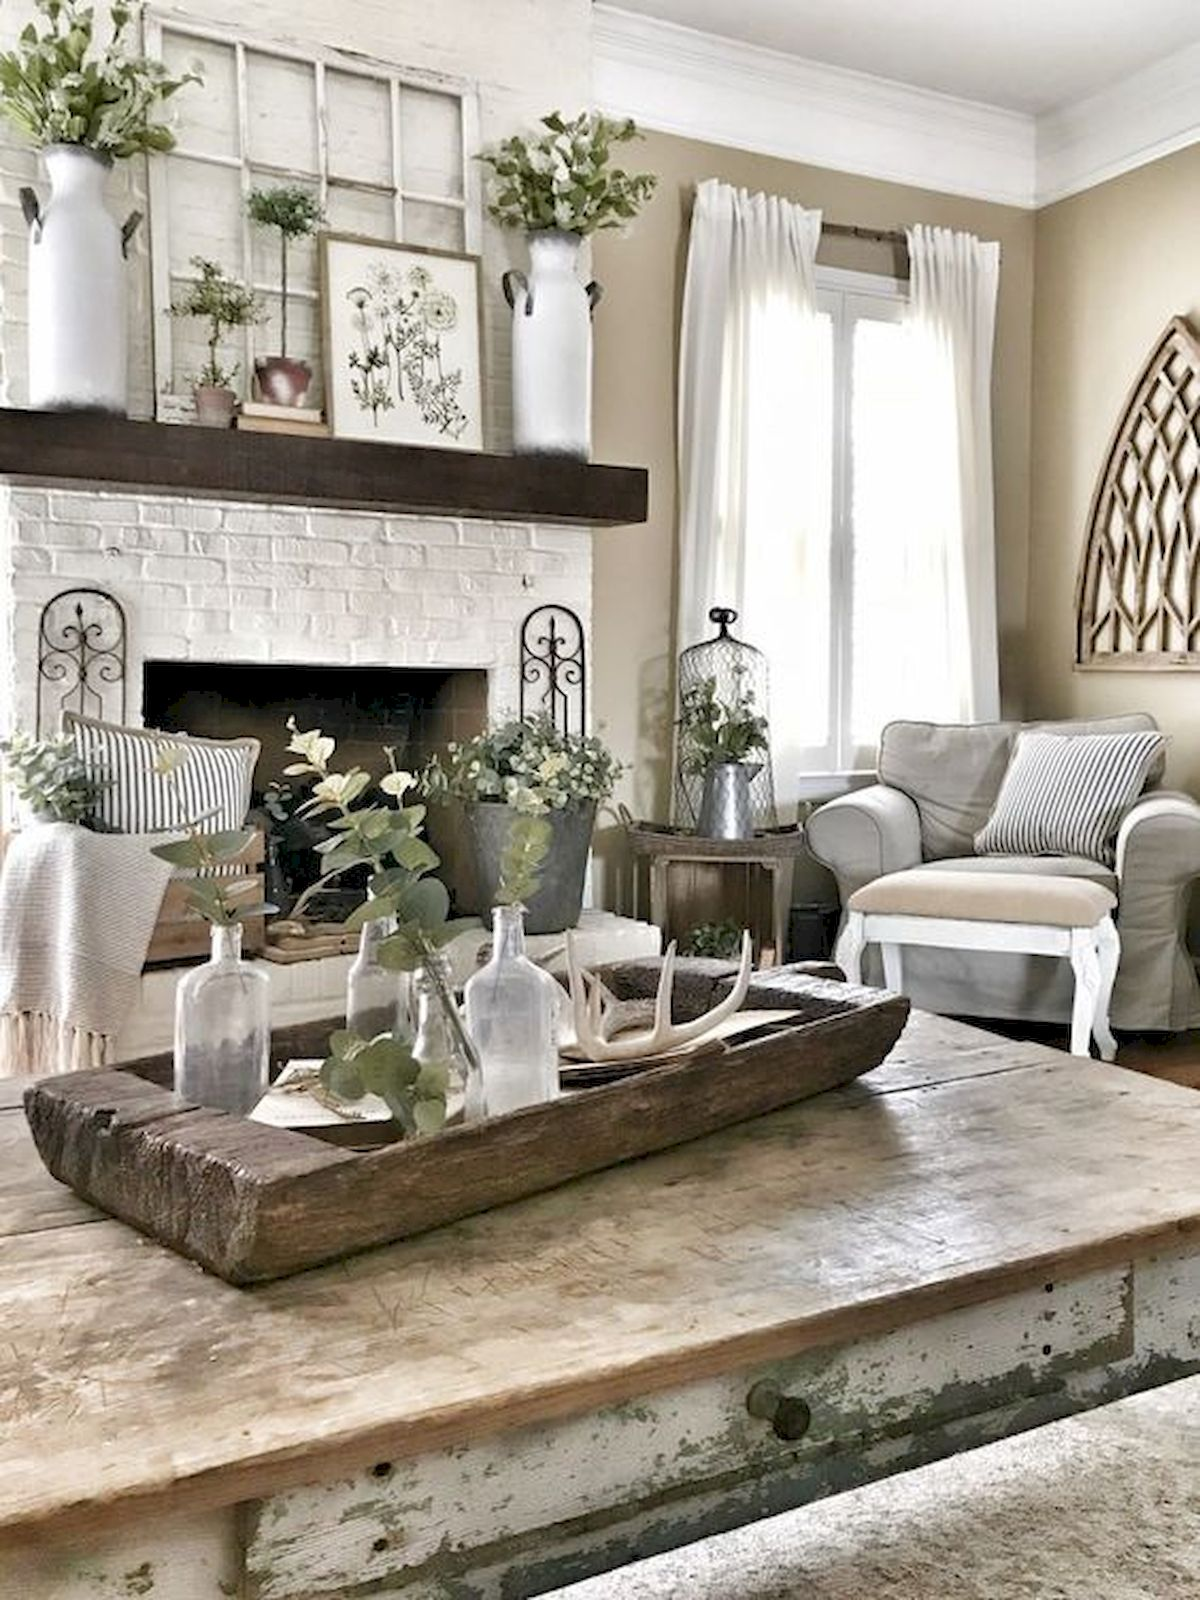 Https Homebnc Com Best Rustic Farmhouse Interior Design Ideas Farmhouseinterior: 75 Best Farmhouse Wall Decor Ideas For Living Room